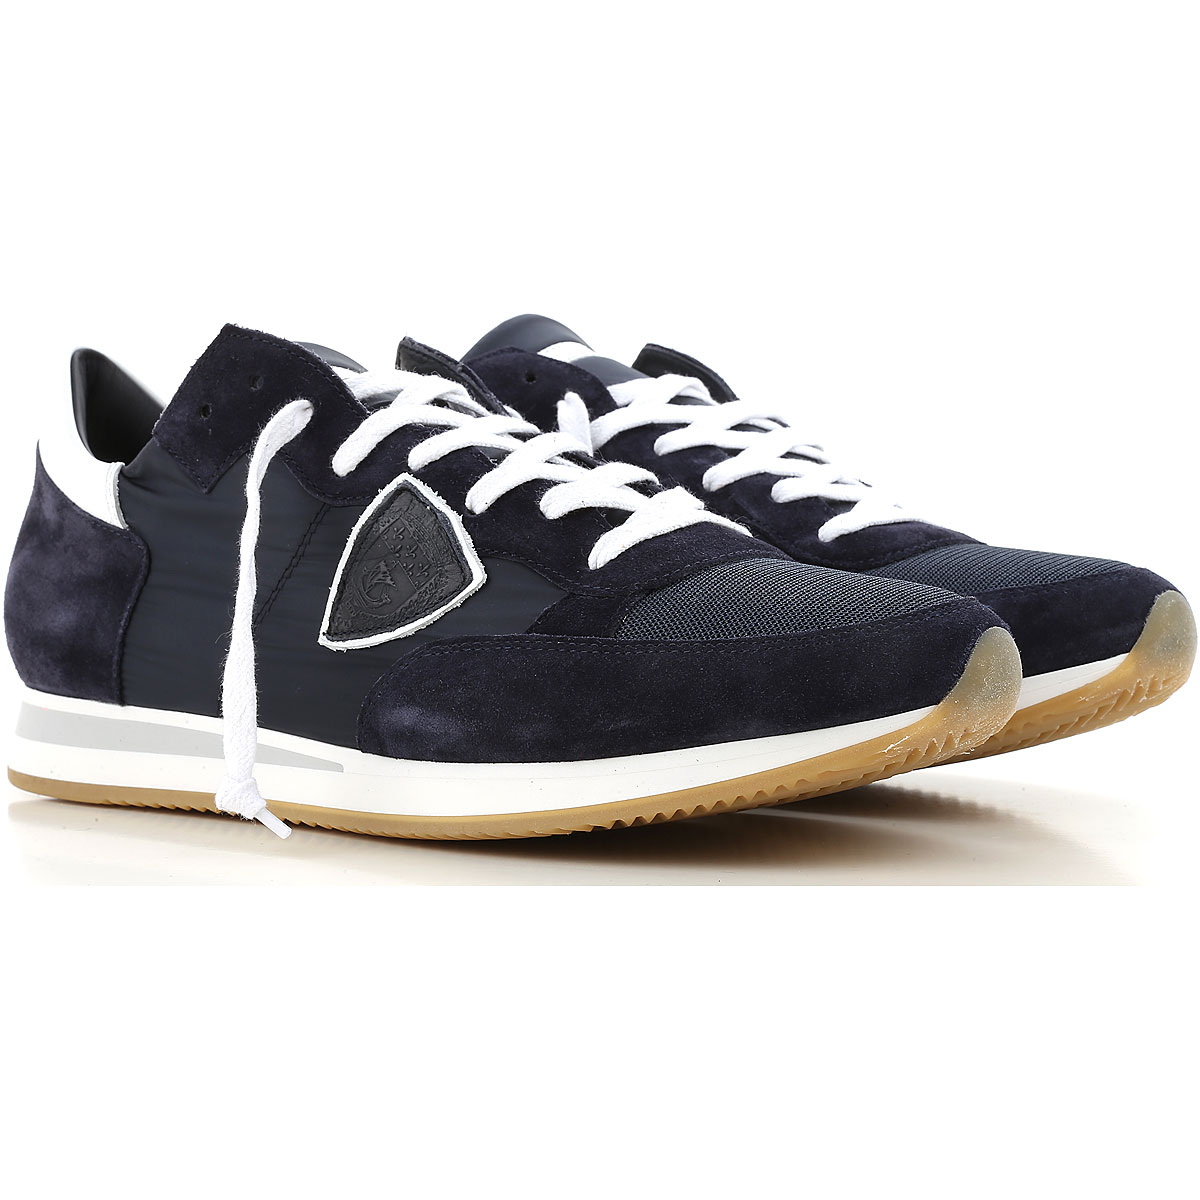 Philippe Model Sneakers for Men On Sale, Basic Blue, Suede leather, 2019, 10 10.5 11.5 6.5 7.5 8 9